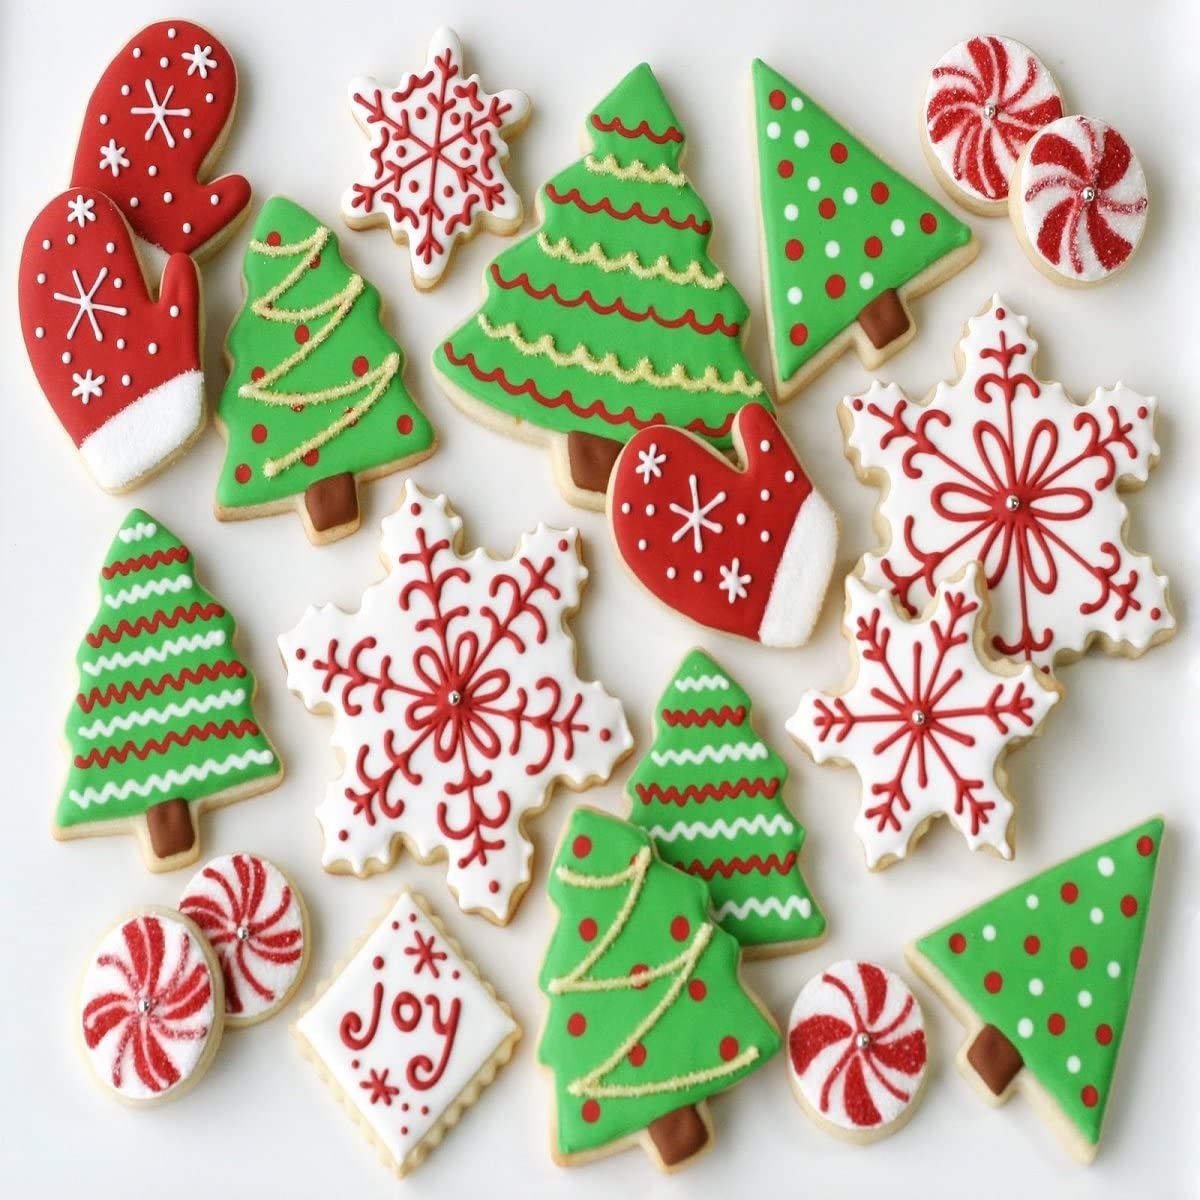 CHRISTMAS COOKIES FRAGRANCE OIL - 4 OZ - FOR CANDLE & SOAP MAKING BY VIRGINIA CANDLE SUPPLY - FREE S&H IN USA